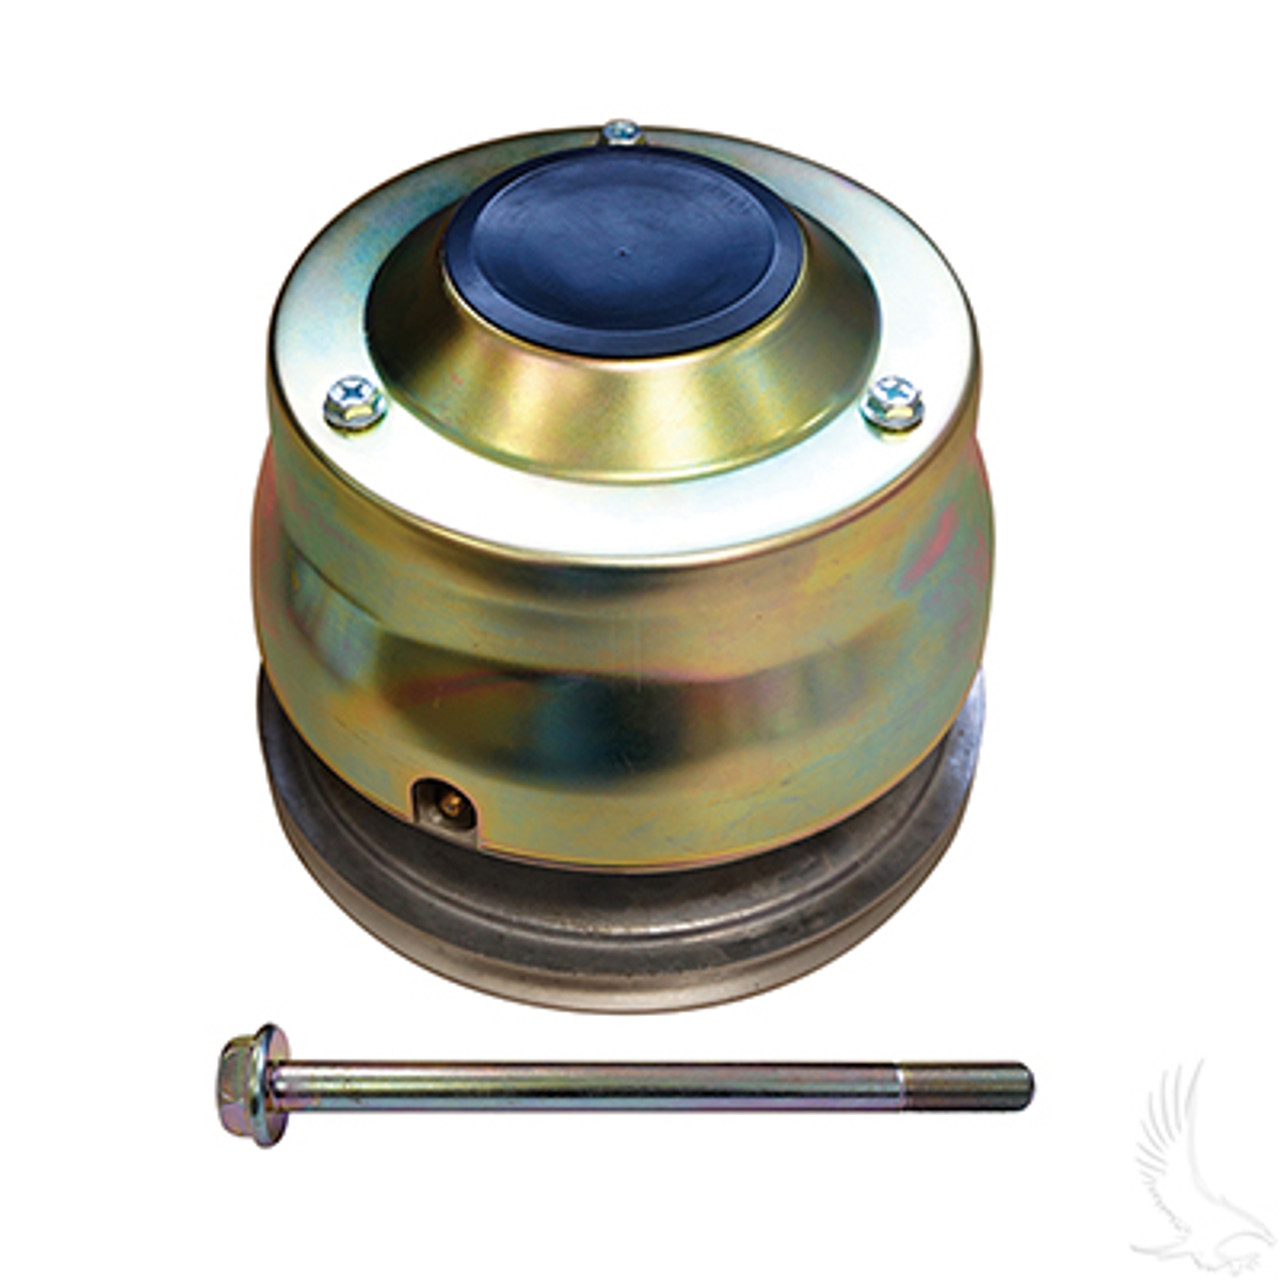 hight resolution of yamaha g29 drive golf cart primary clutch 2007